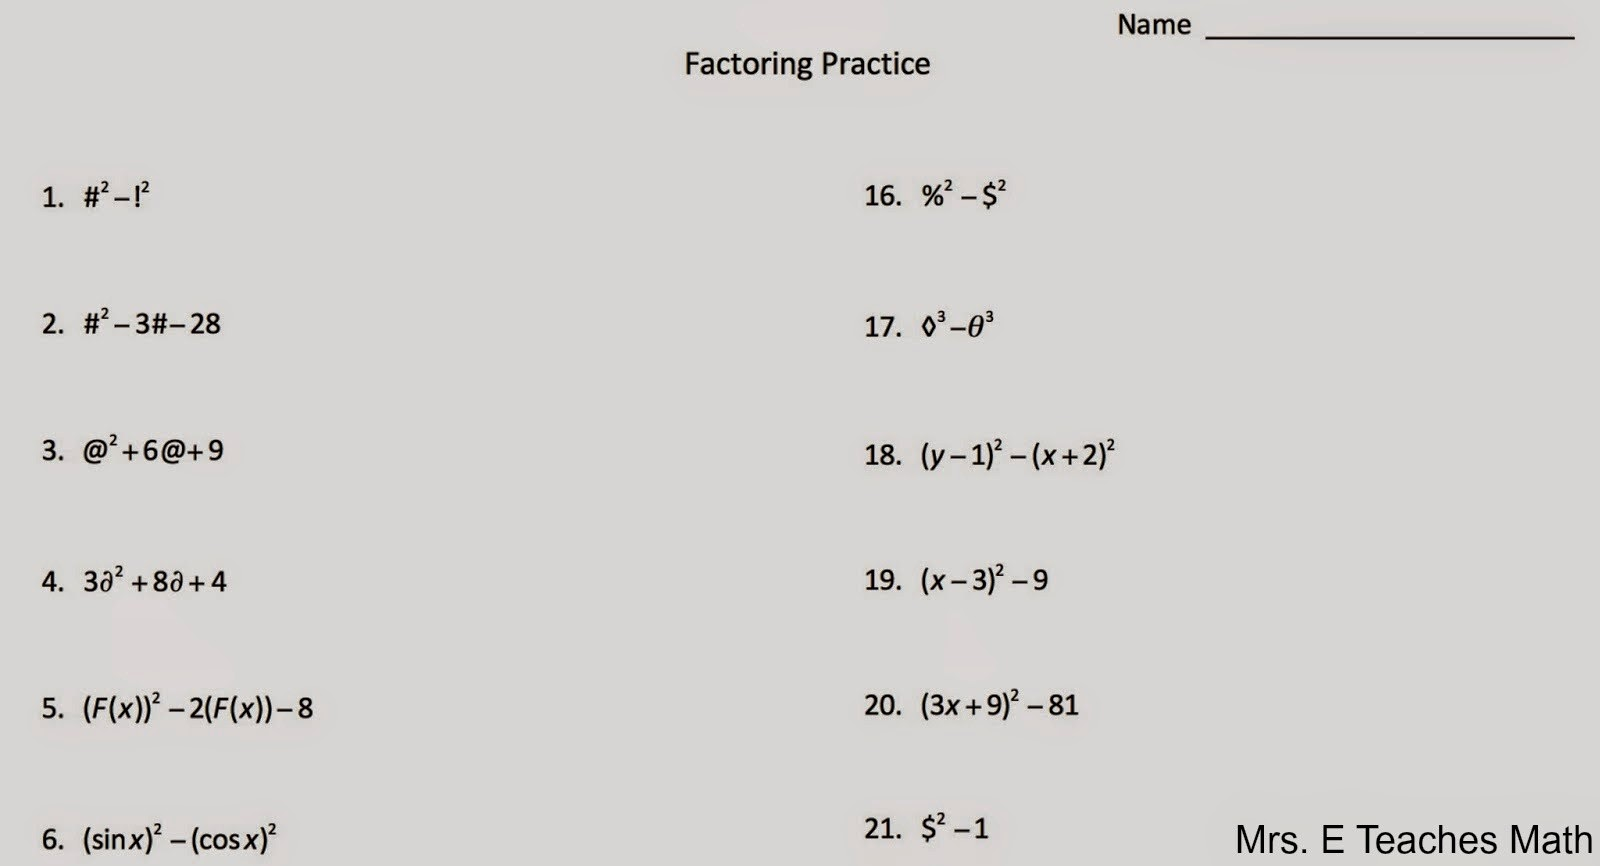 worksheet Algebra Ii Worksheets factoring practice worksheet algebra 2 answers aii 1 worksheets related keywords suggestions